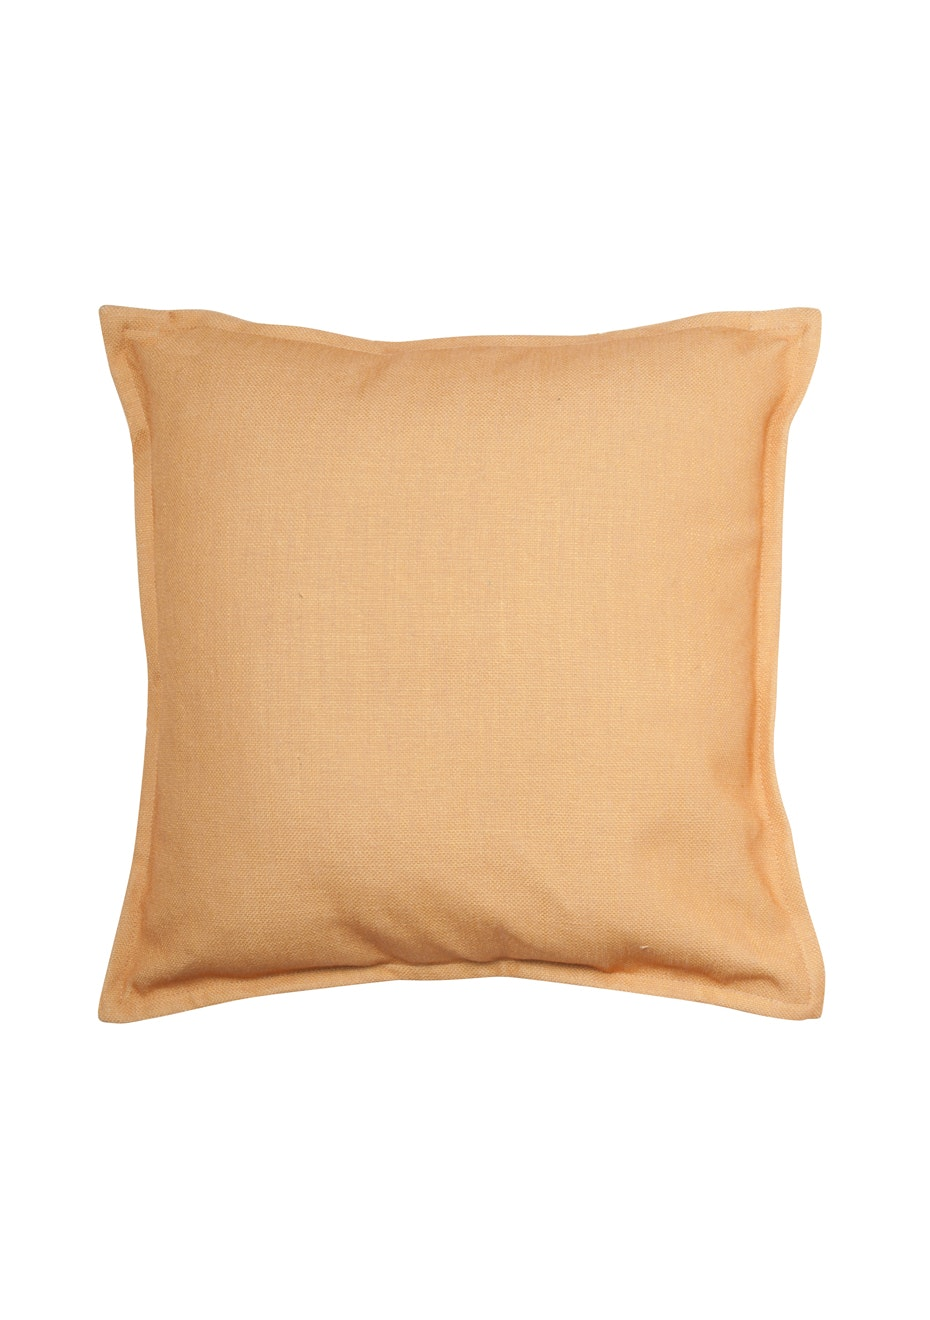 General Eclectic - Lorna Cushion Honey Gold